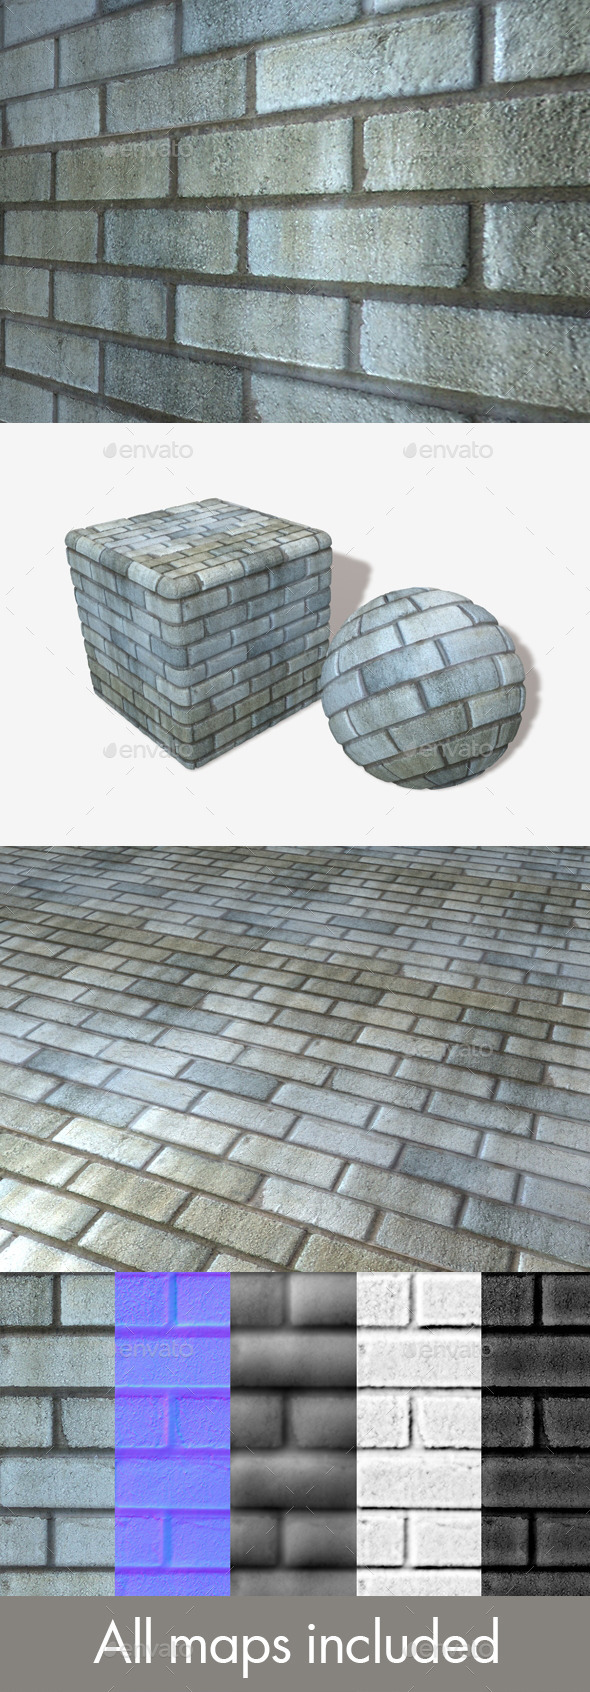 Blue Grey Bricks Seamless Texture - 3DOcean Item for Sale